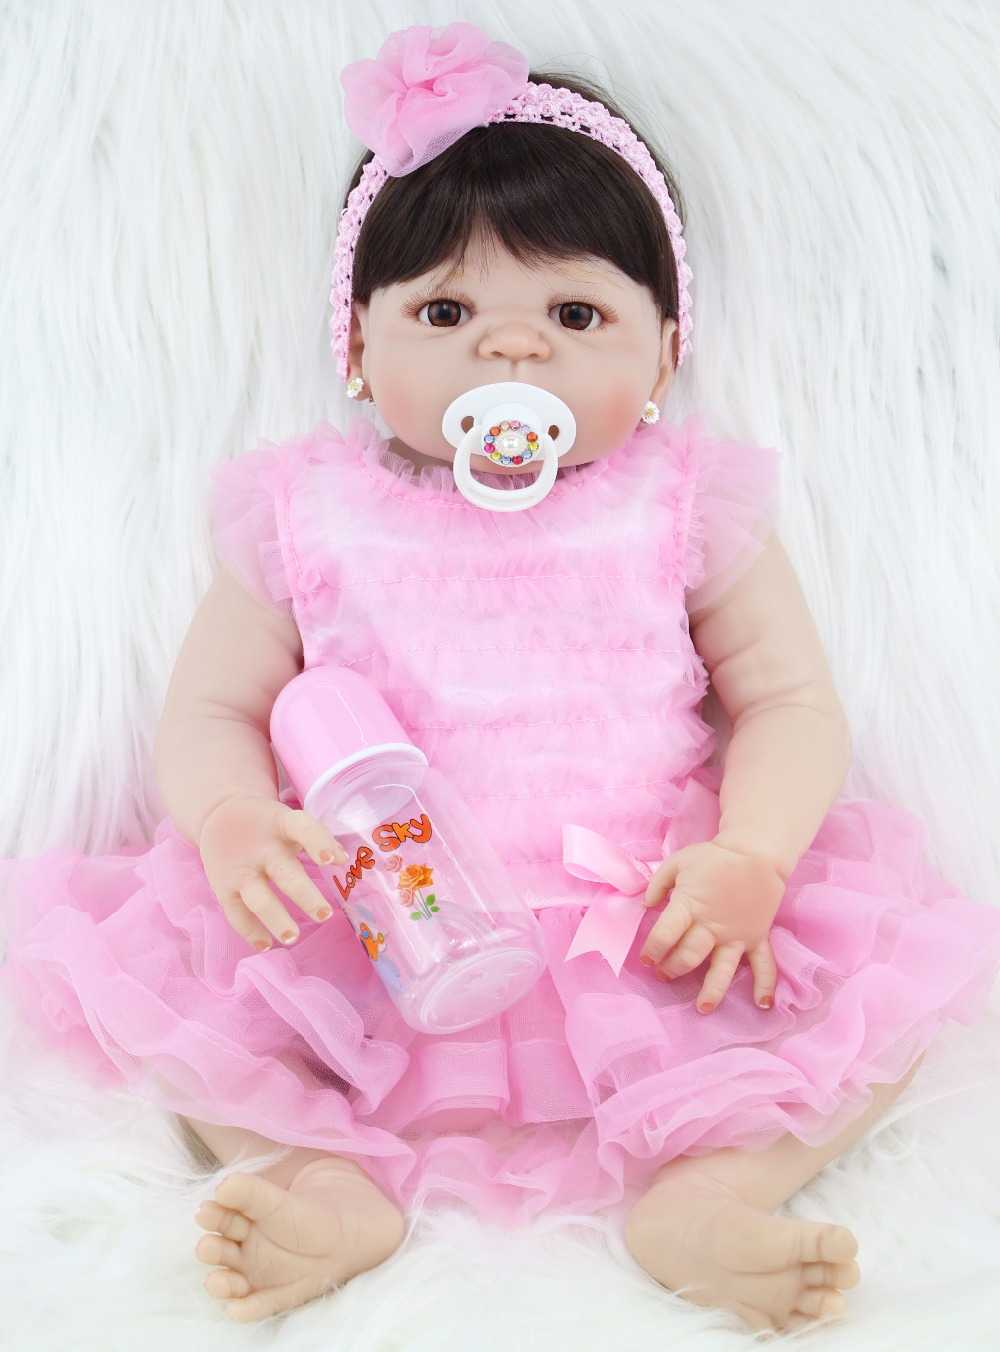 NPKCOLLECTION 55cm Full Silicone Reborn Girl Baby Doll font b Toys b font Lifelike Newborn Princess